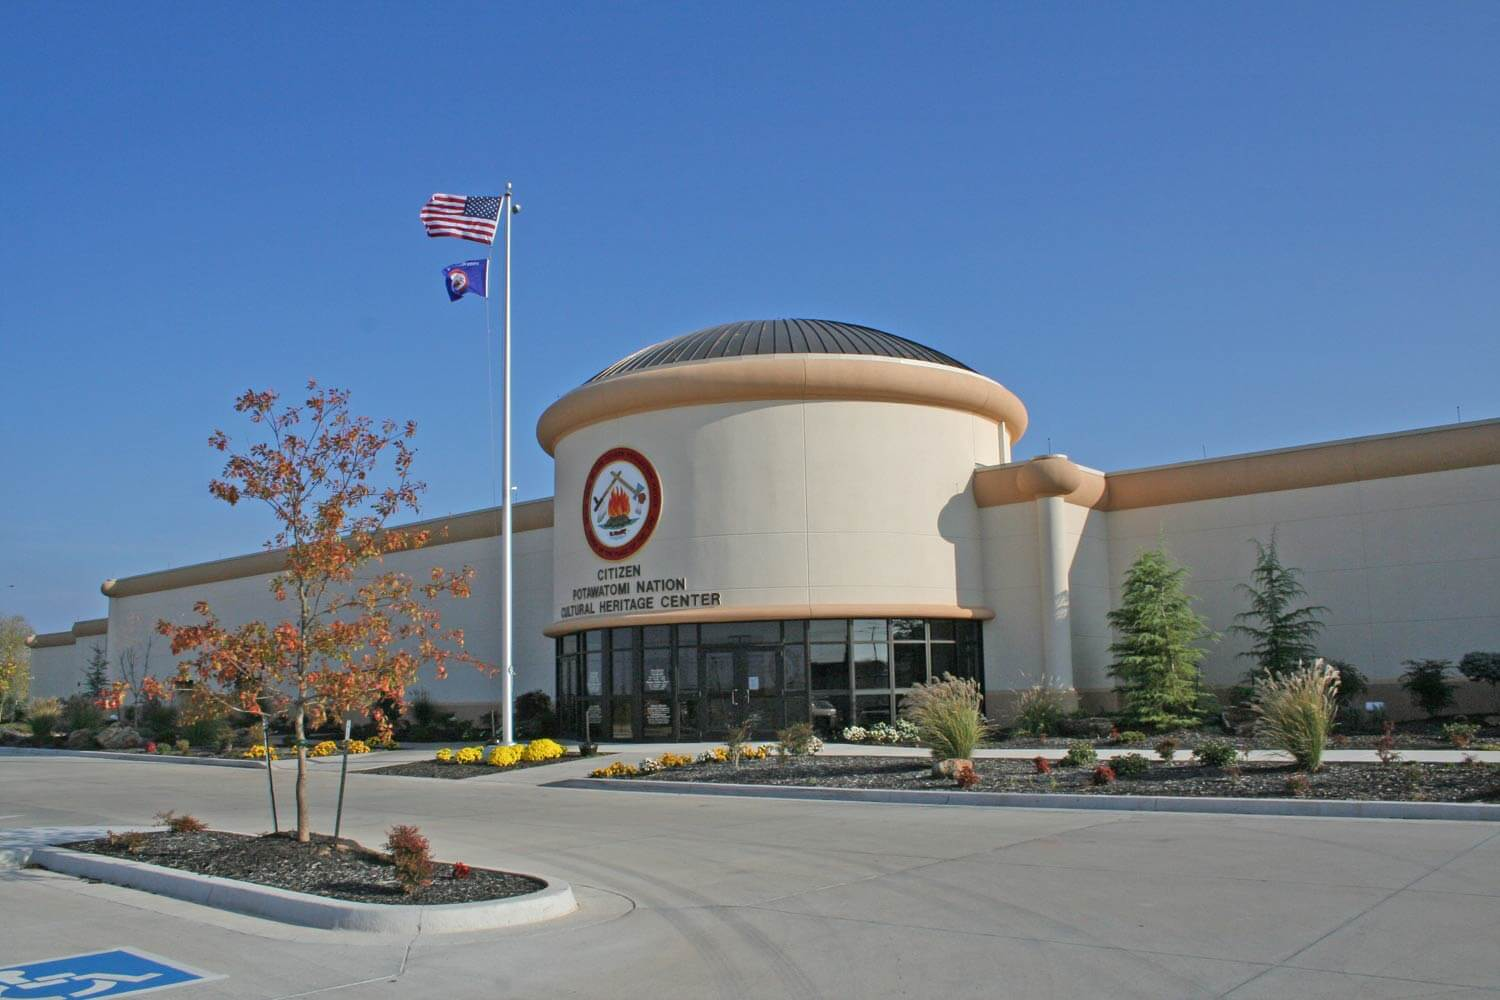 CPN Cultural Heritage Center Daytime Exterior Image